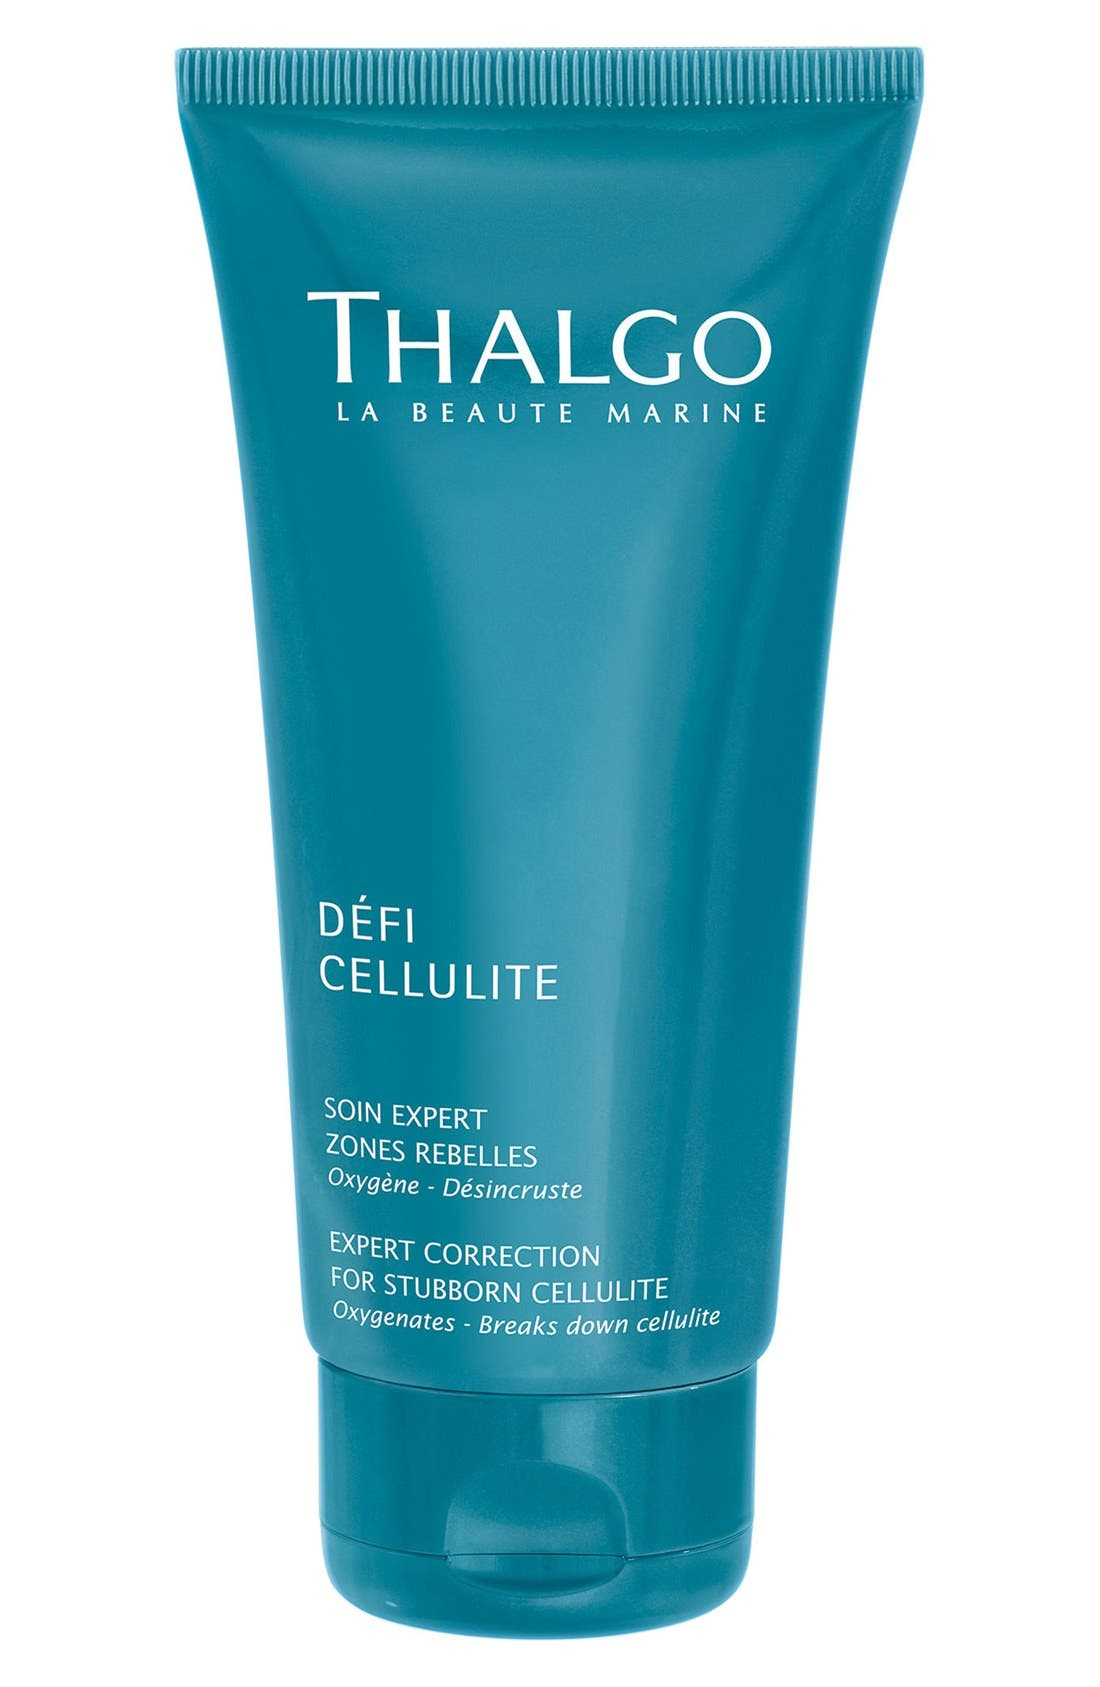 Thalgo Expert Correction for Stubborn Cellulite Treatment